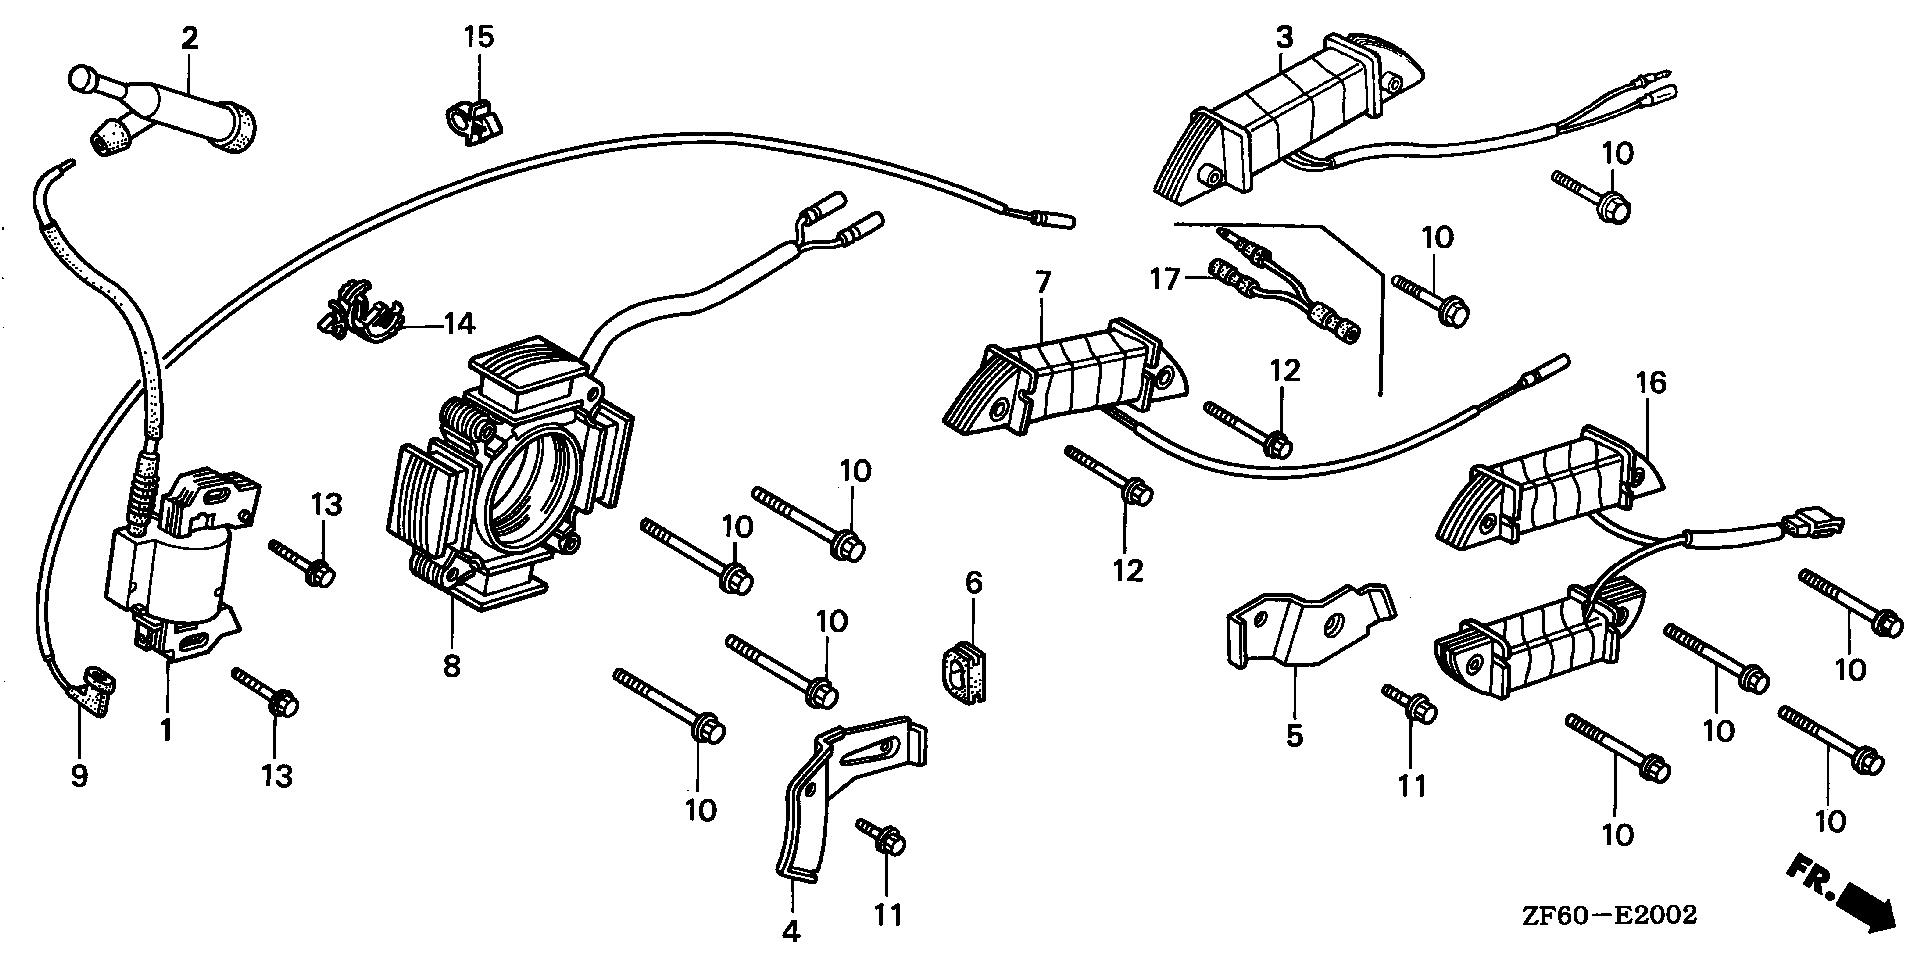 IGNITION COIL (3)